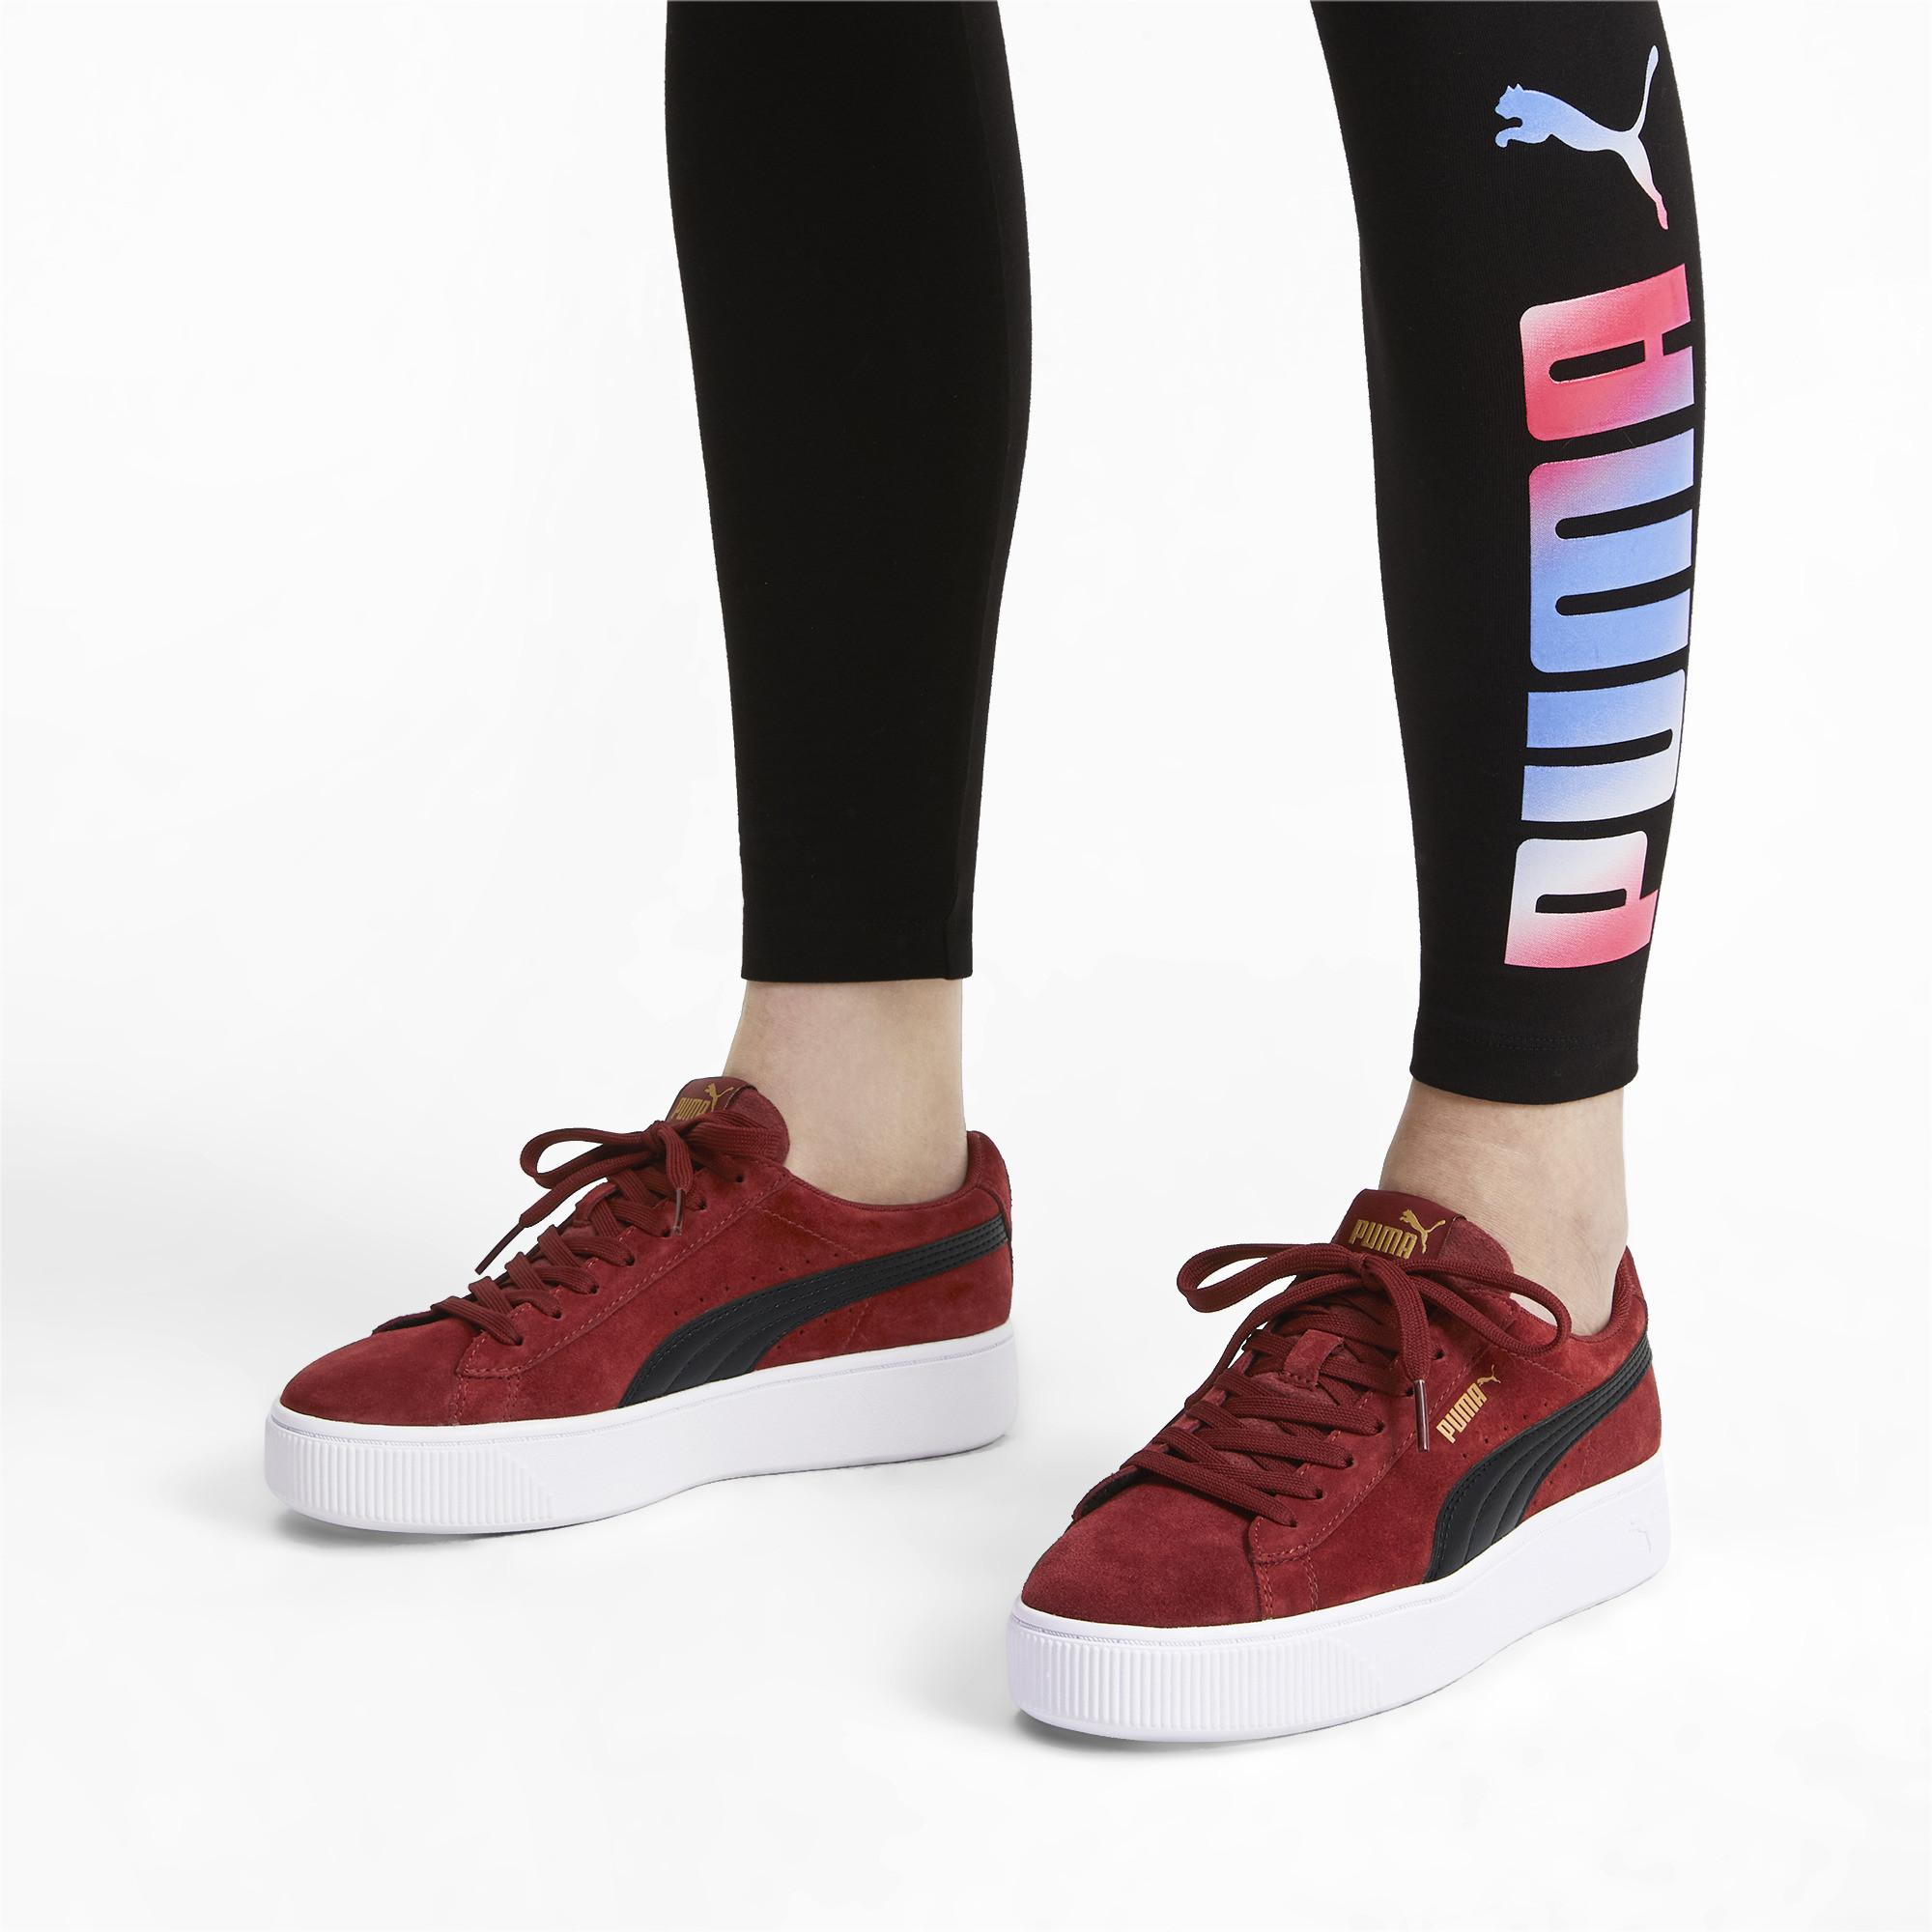 PUMA Vikky Stacked Suede Women's Sneakers - Lyst